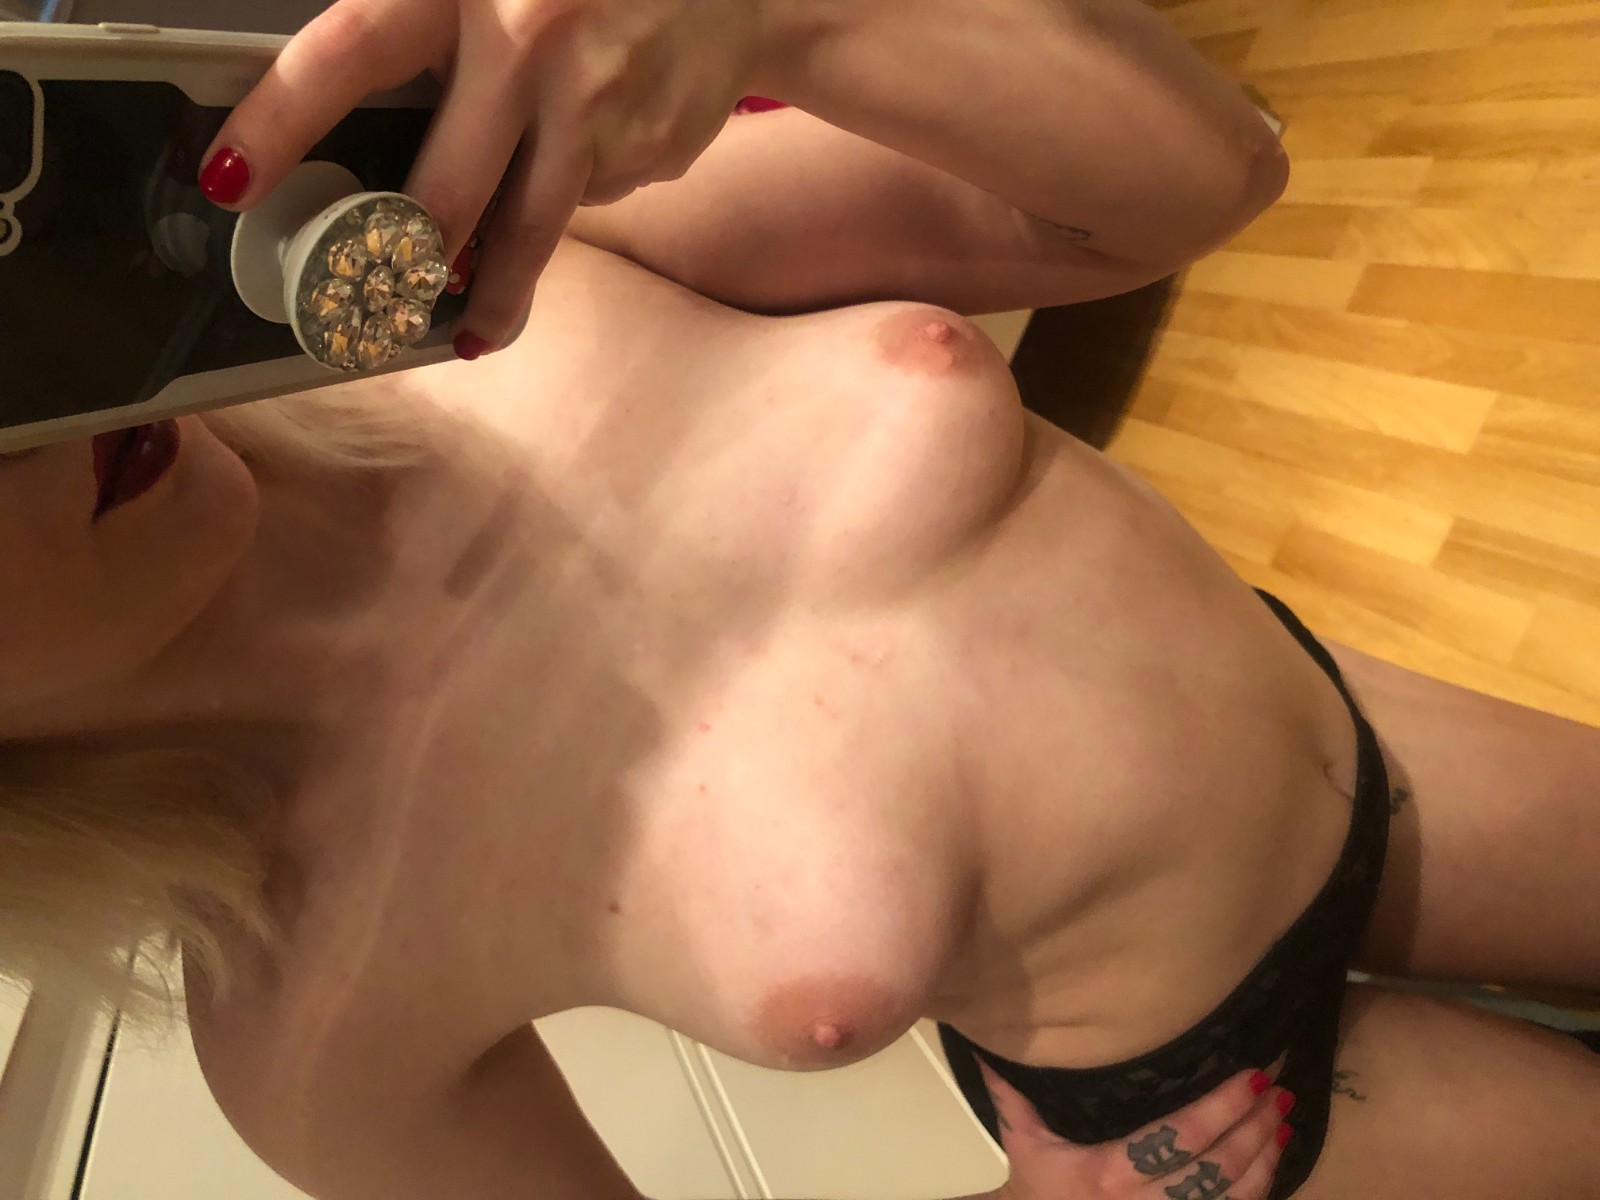 First Time** Sex Looking **For Hard Sex**Looking to have a Good time** Call Me /